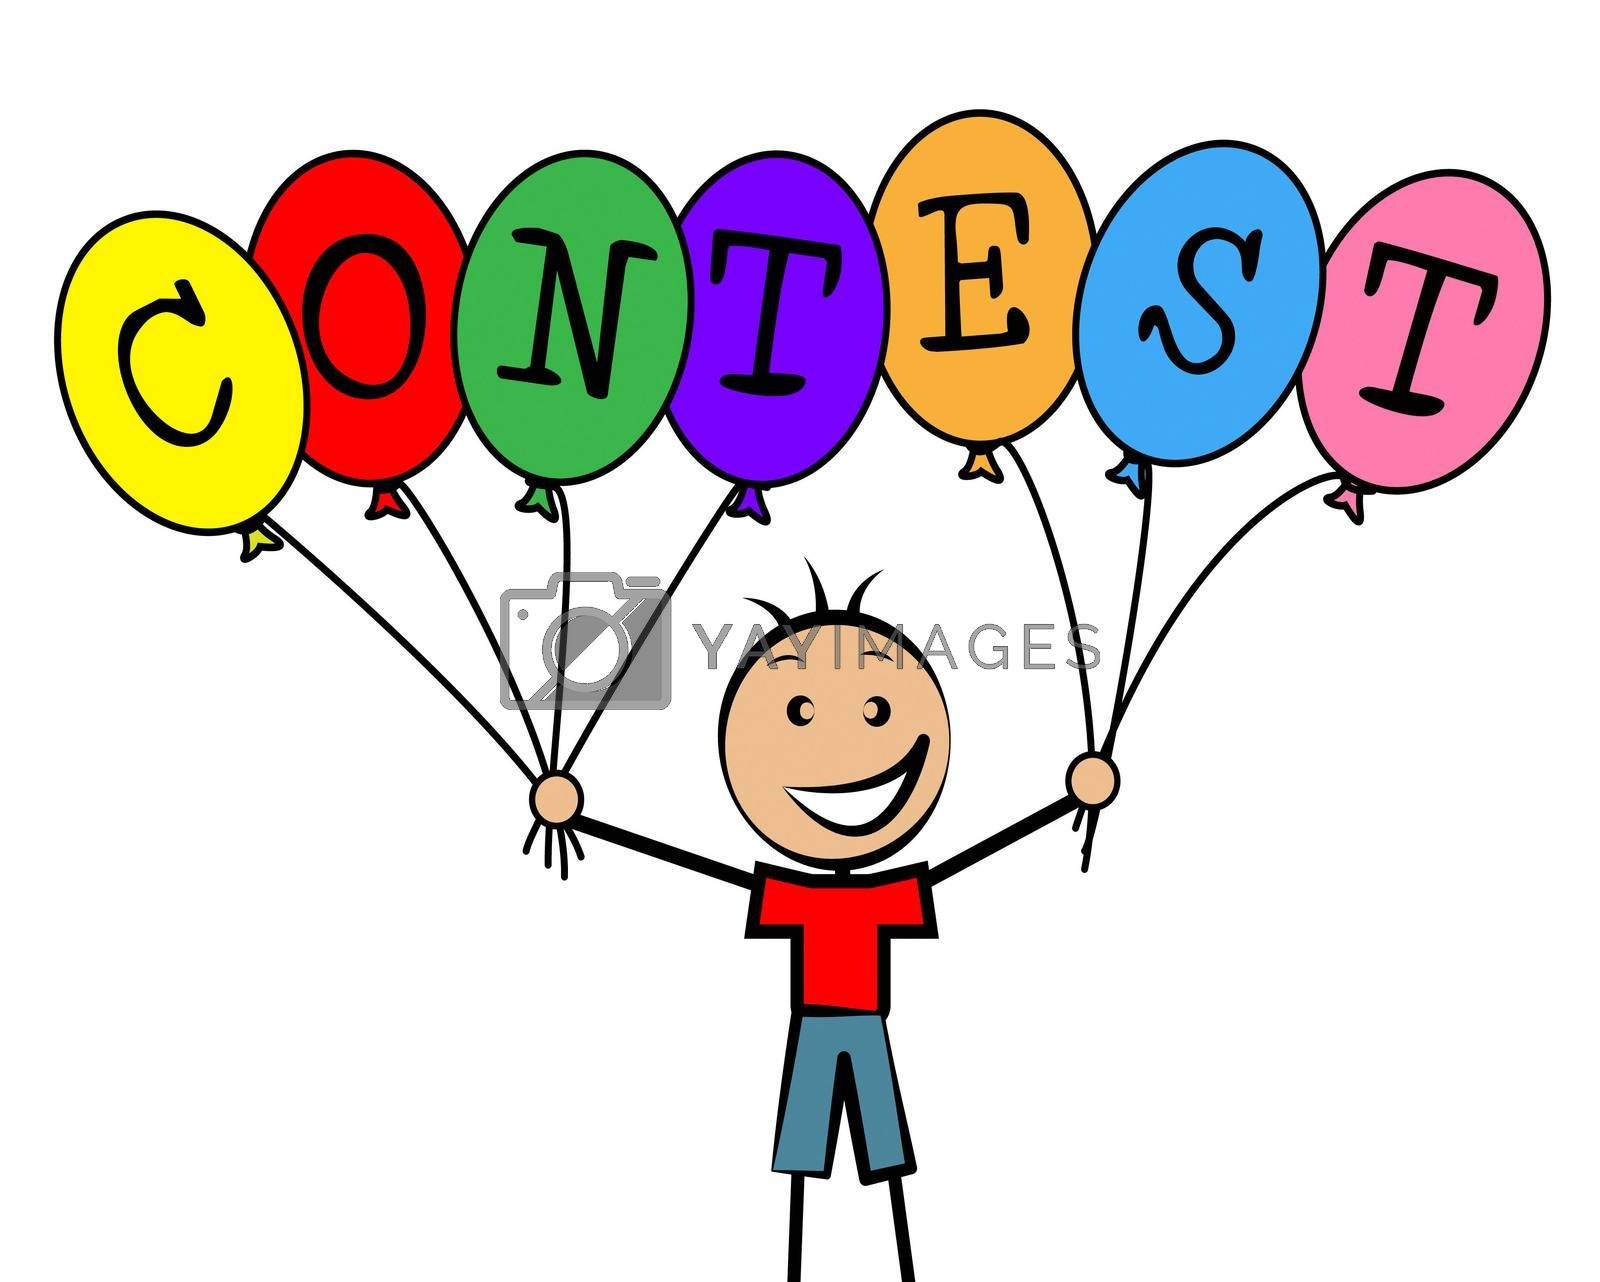 Contest Balloons Means Kids Challenge And Competitiveness by stuartmiles